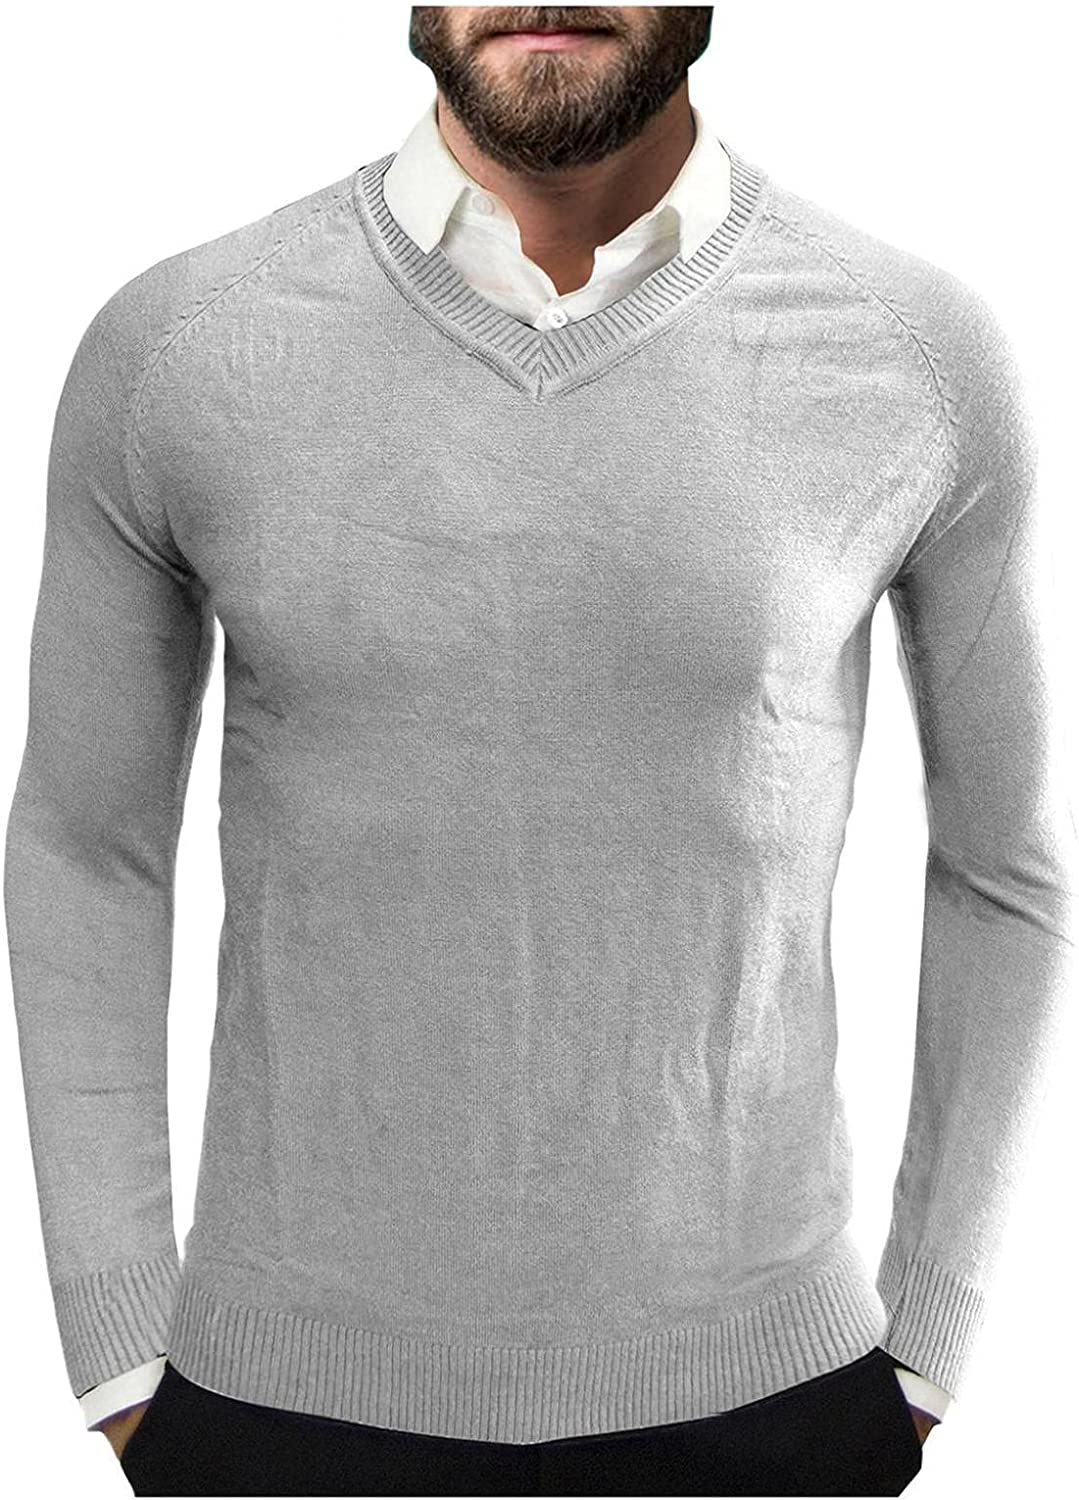 LEIYAN Mens Cable Knit Sweater Long Sleeve V-Neck Casual Slim Fit Thermal Comfy Jumper Pullovers Knitwear Tops